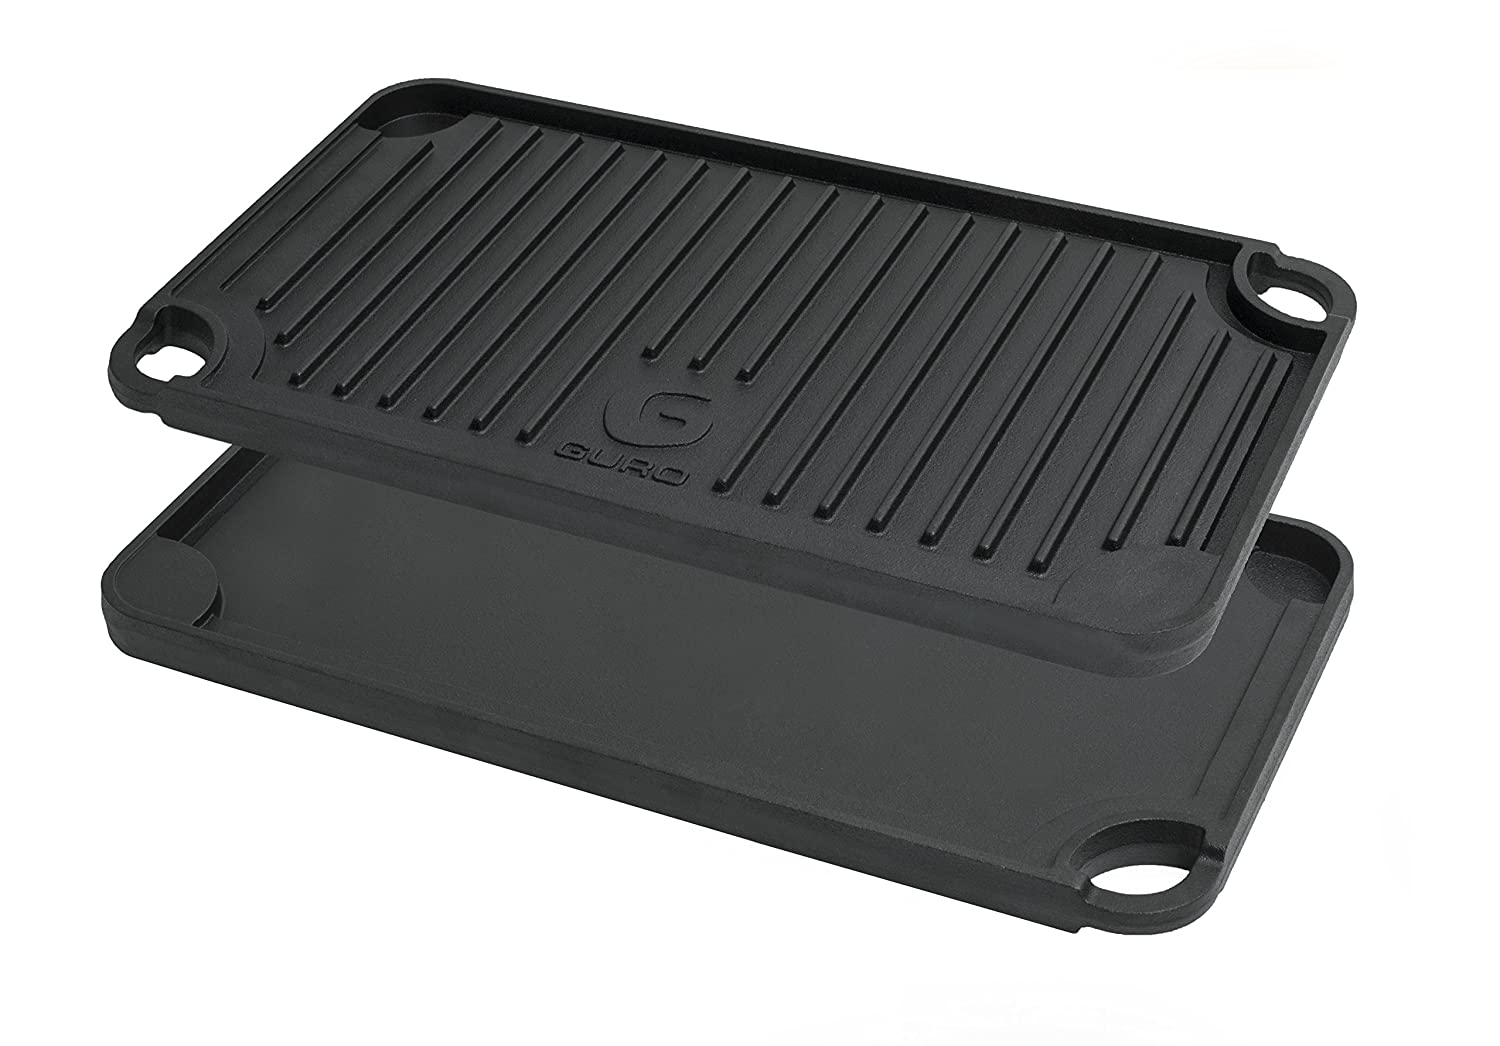 GURO Cast Iron Pre-Seasoned Double Play Griddle/Grill, Two Sizes (17